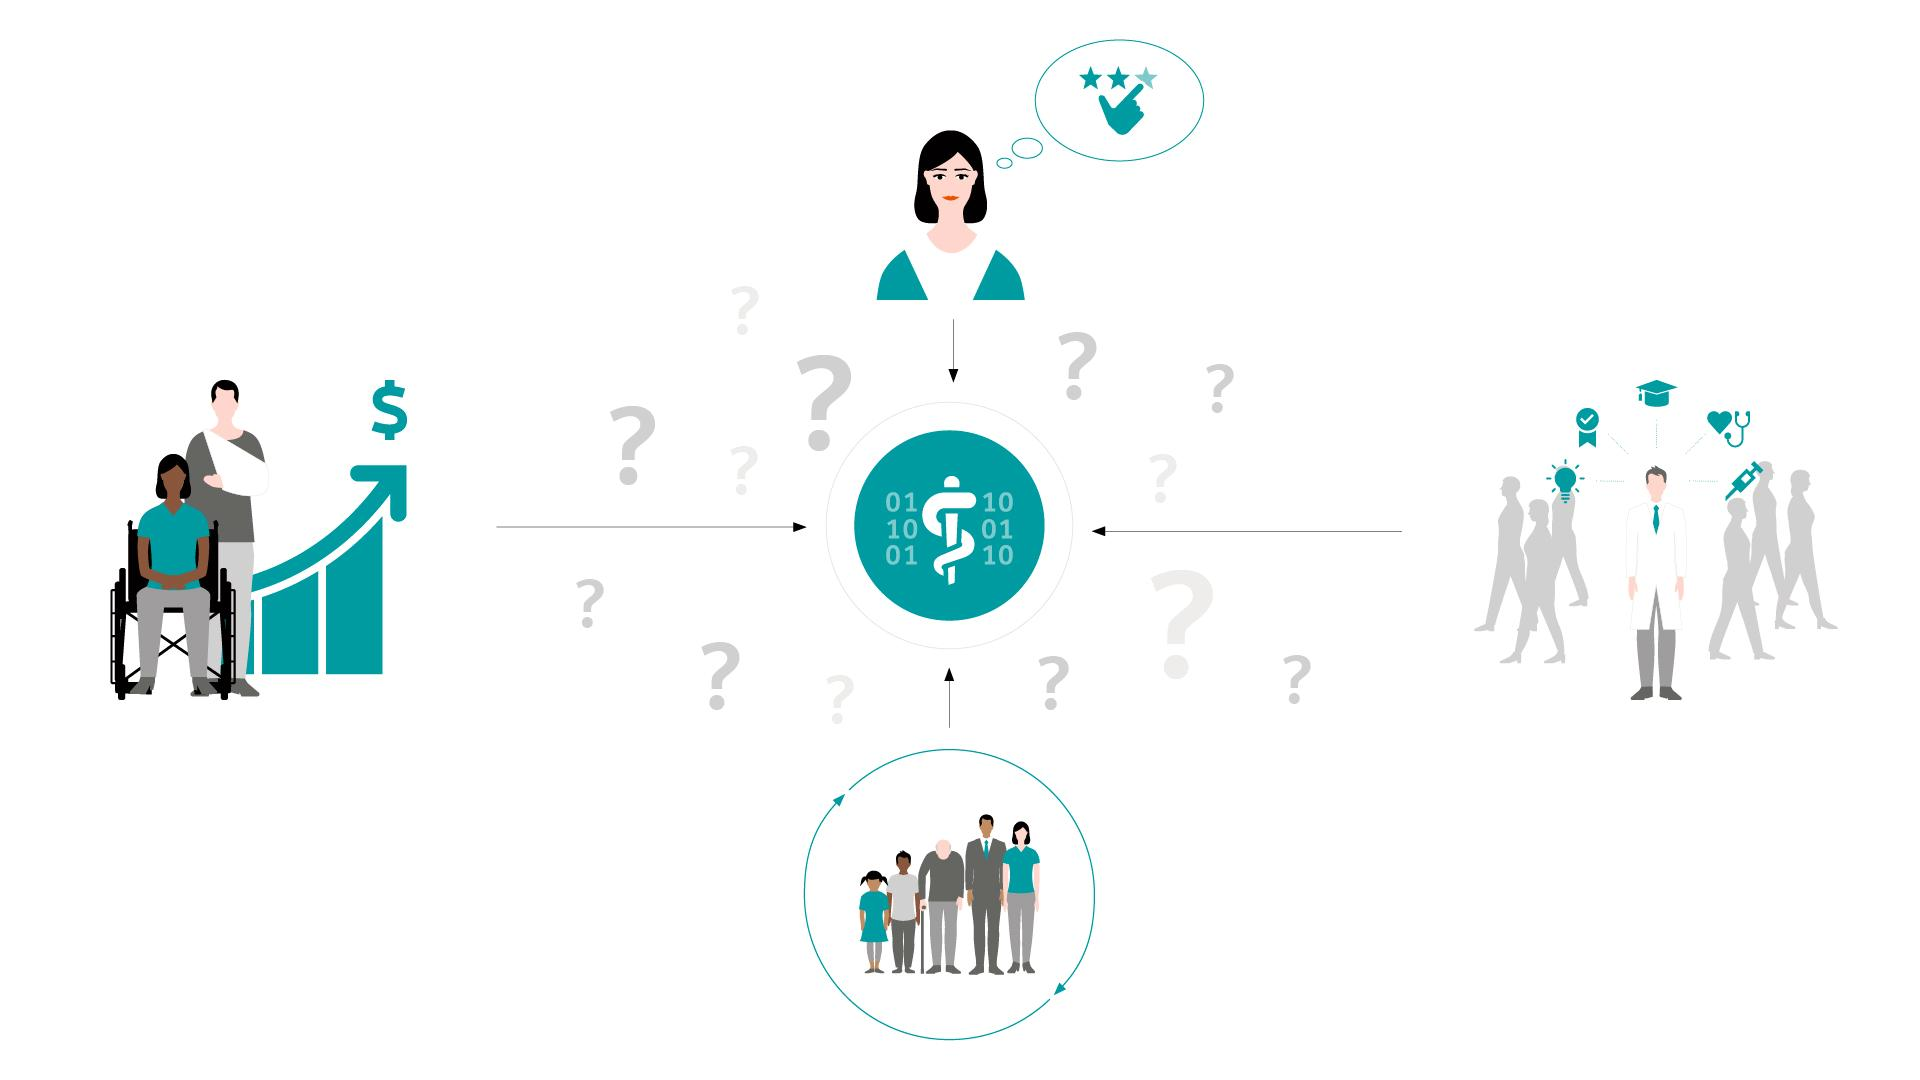 Siemens Healthineers - Consulting services and the digital transformation of healthcare